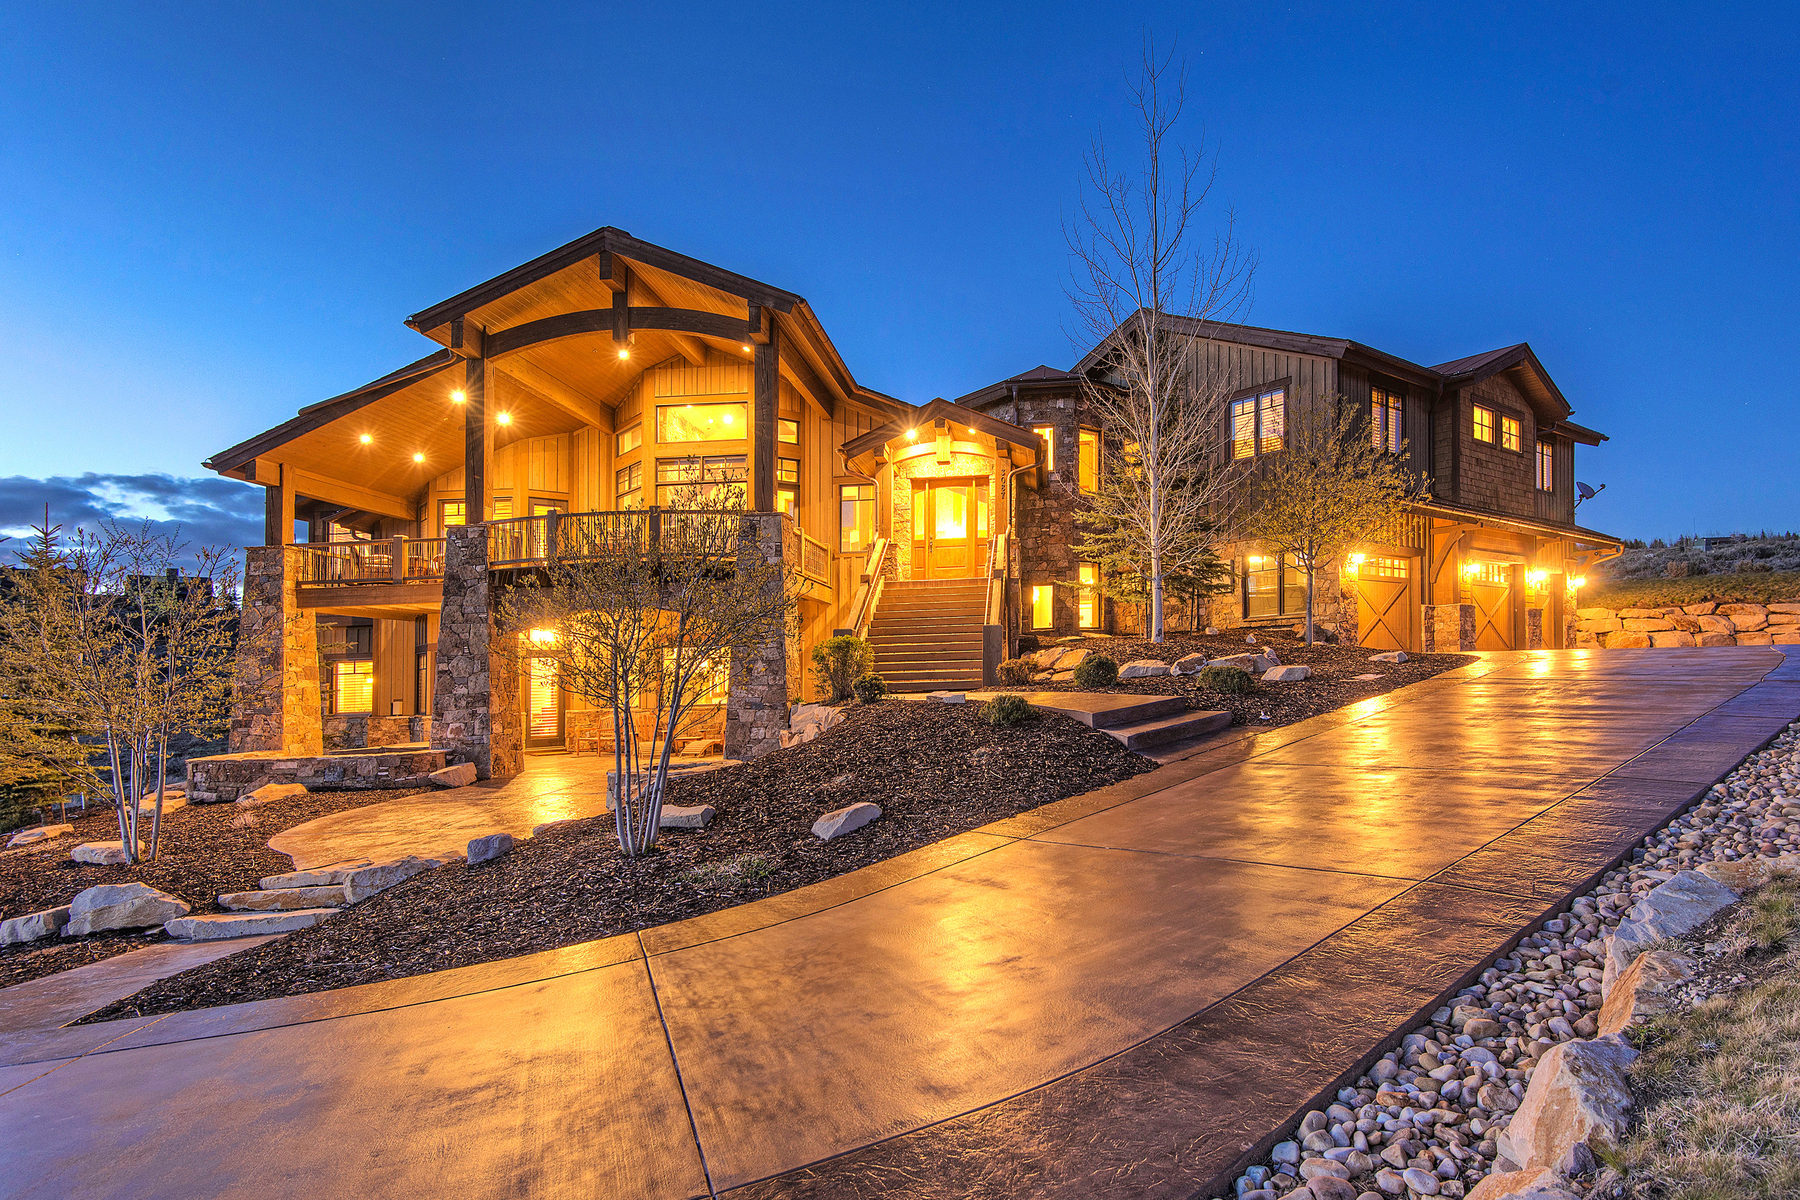 Single Family Home for Sale at Majestic Mountain Elegance 3087 Blue Sage Trail Park City, Utah 84098 United States